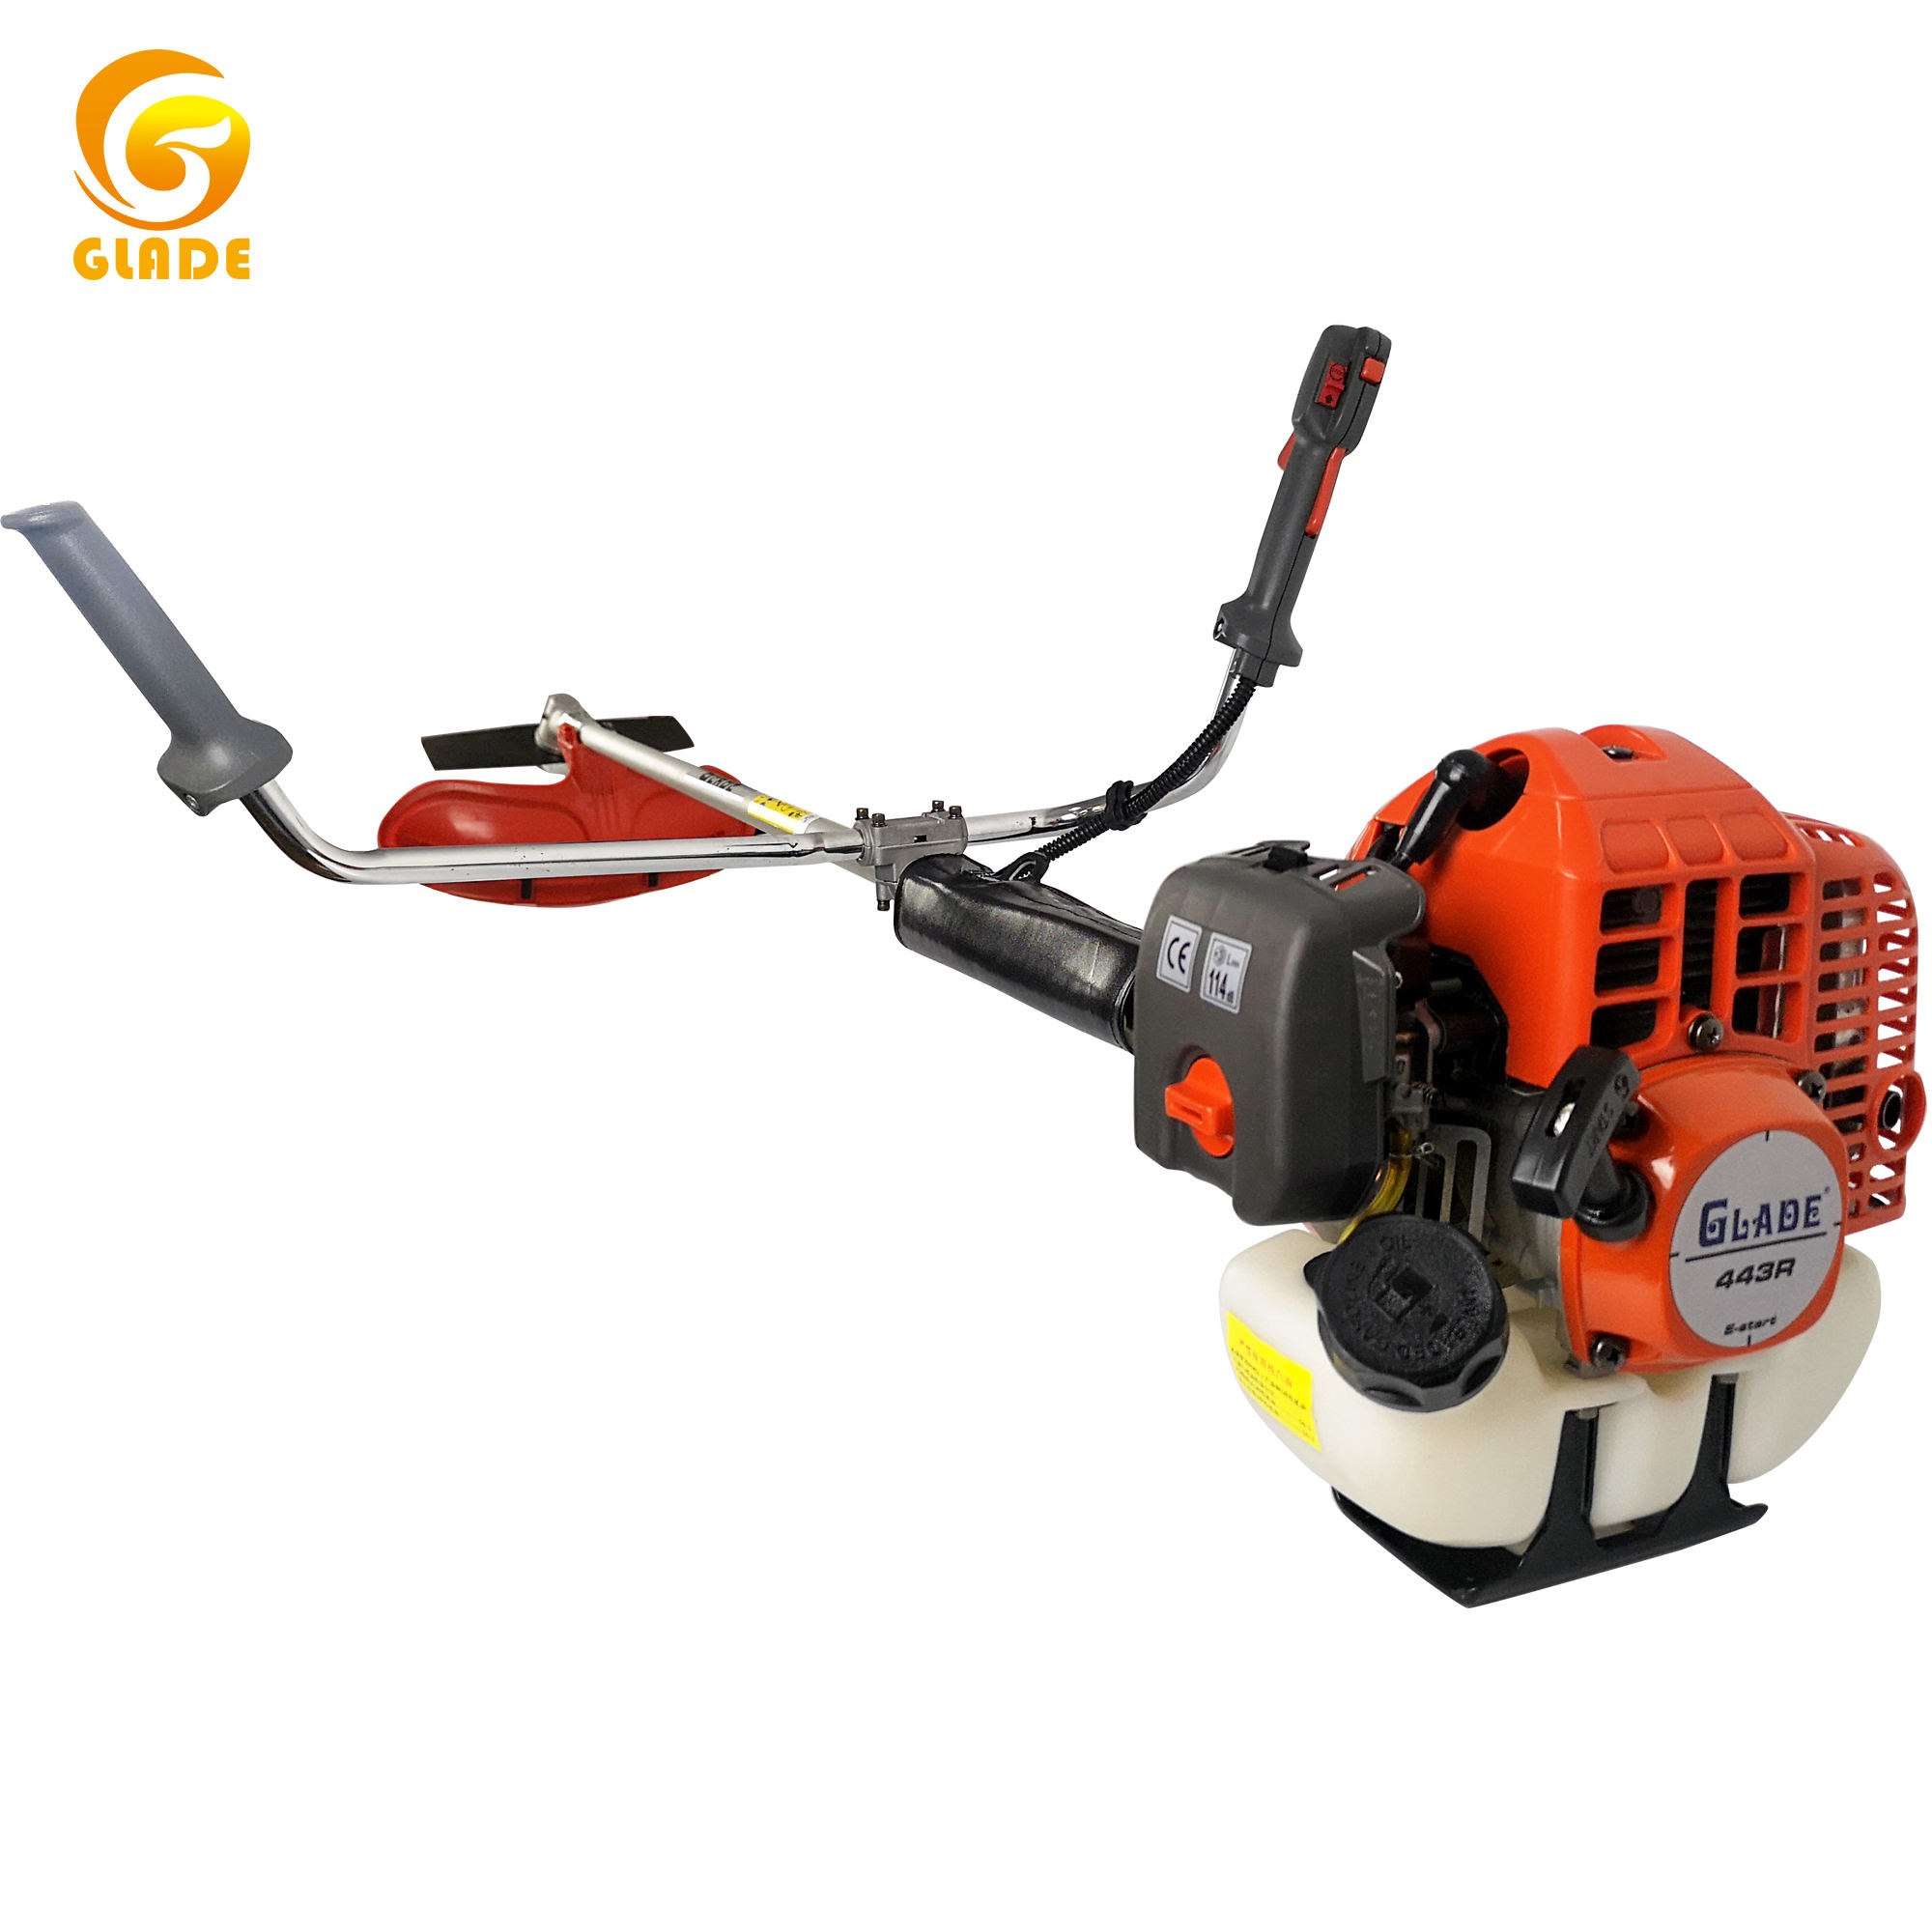 gasoline 43cccc brush cutter garden used brush cutters grass trimmer thread grass cutter